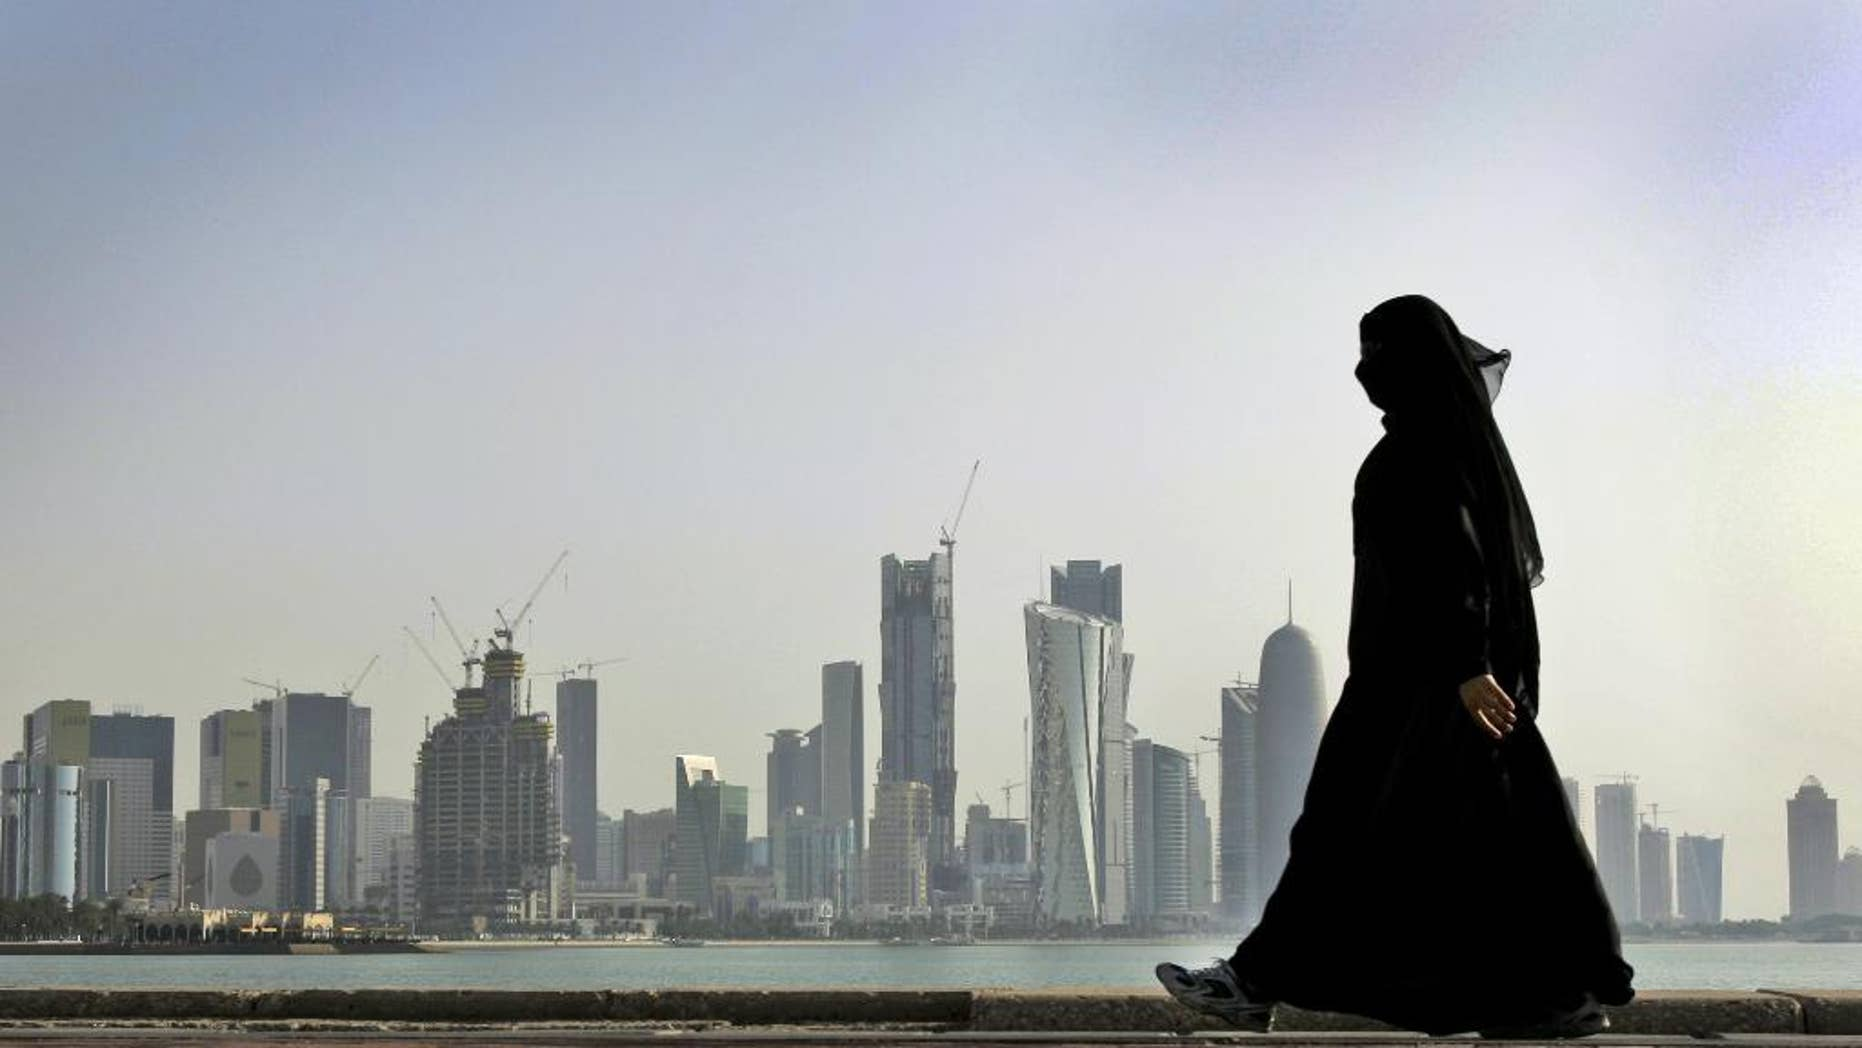 FILE- In this May 14, 2010 file photo, a Qatari woman walks in front of the city skyline in Doha. A lawyer says a Dutch woman who told Qatari police she had been drugged and raped in March has been in government detention ever since on unclear charges. Speaking to The Associated Press, lawyer Brian Lokollo says the 22-year-old woman has appeared three times in court and thinks she may face an adultery charge. (AP Photo/Kamran Jebreili, File)